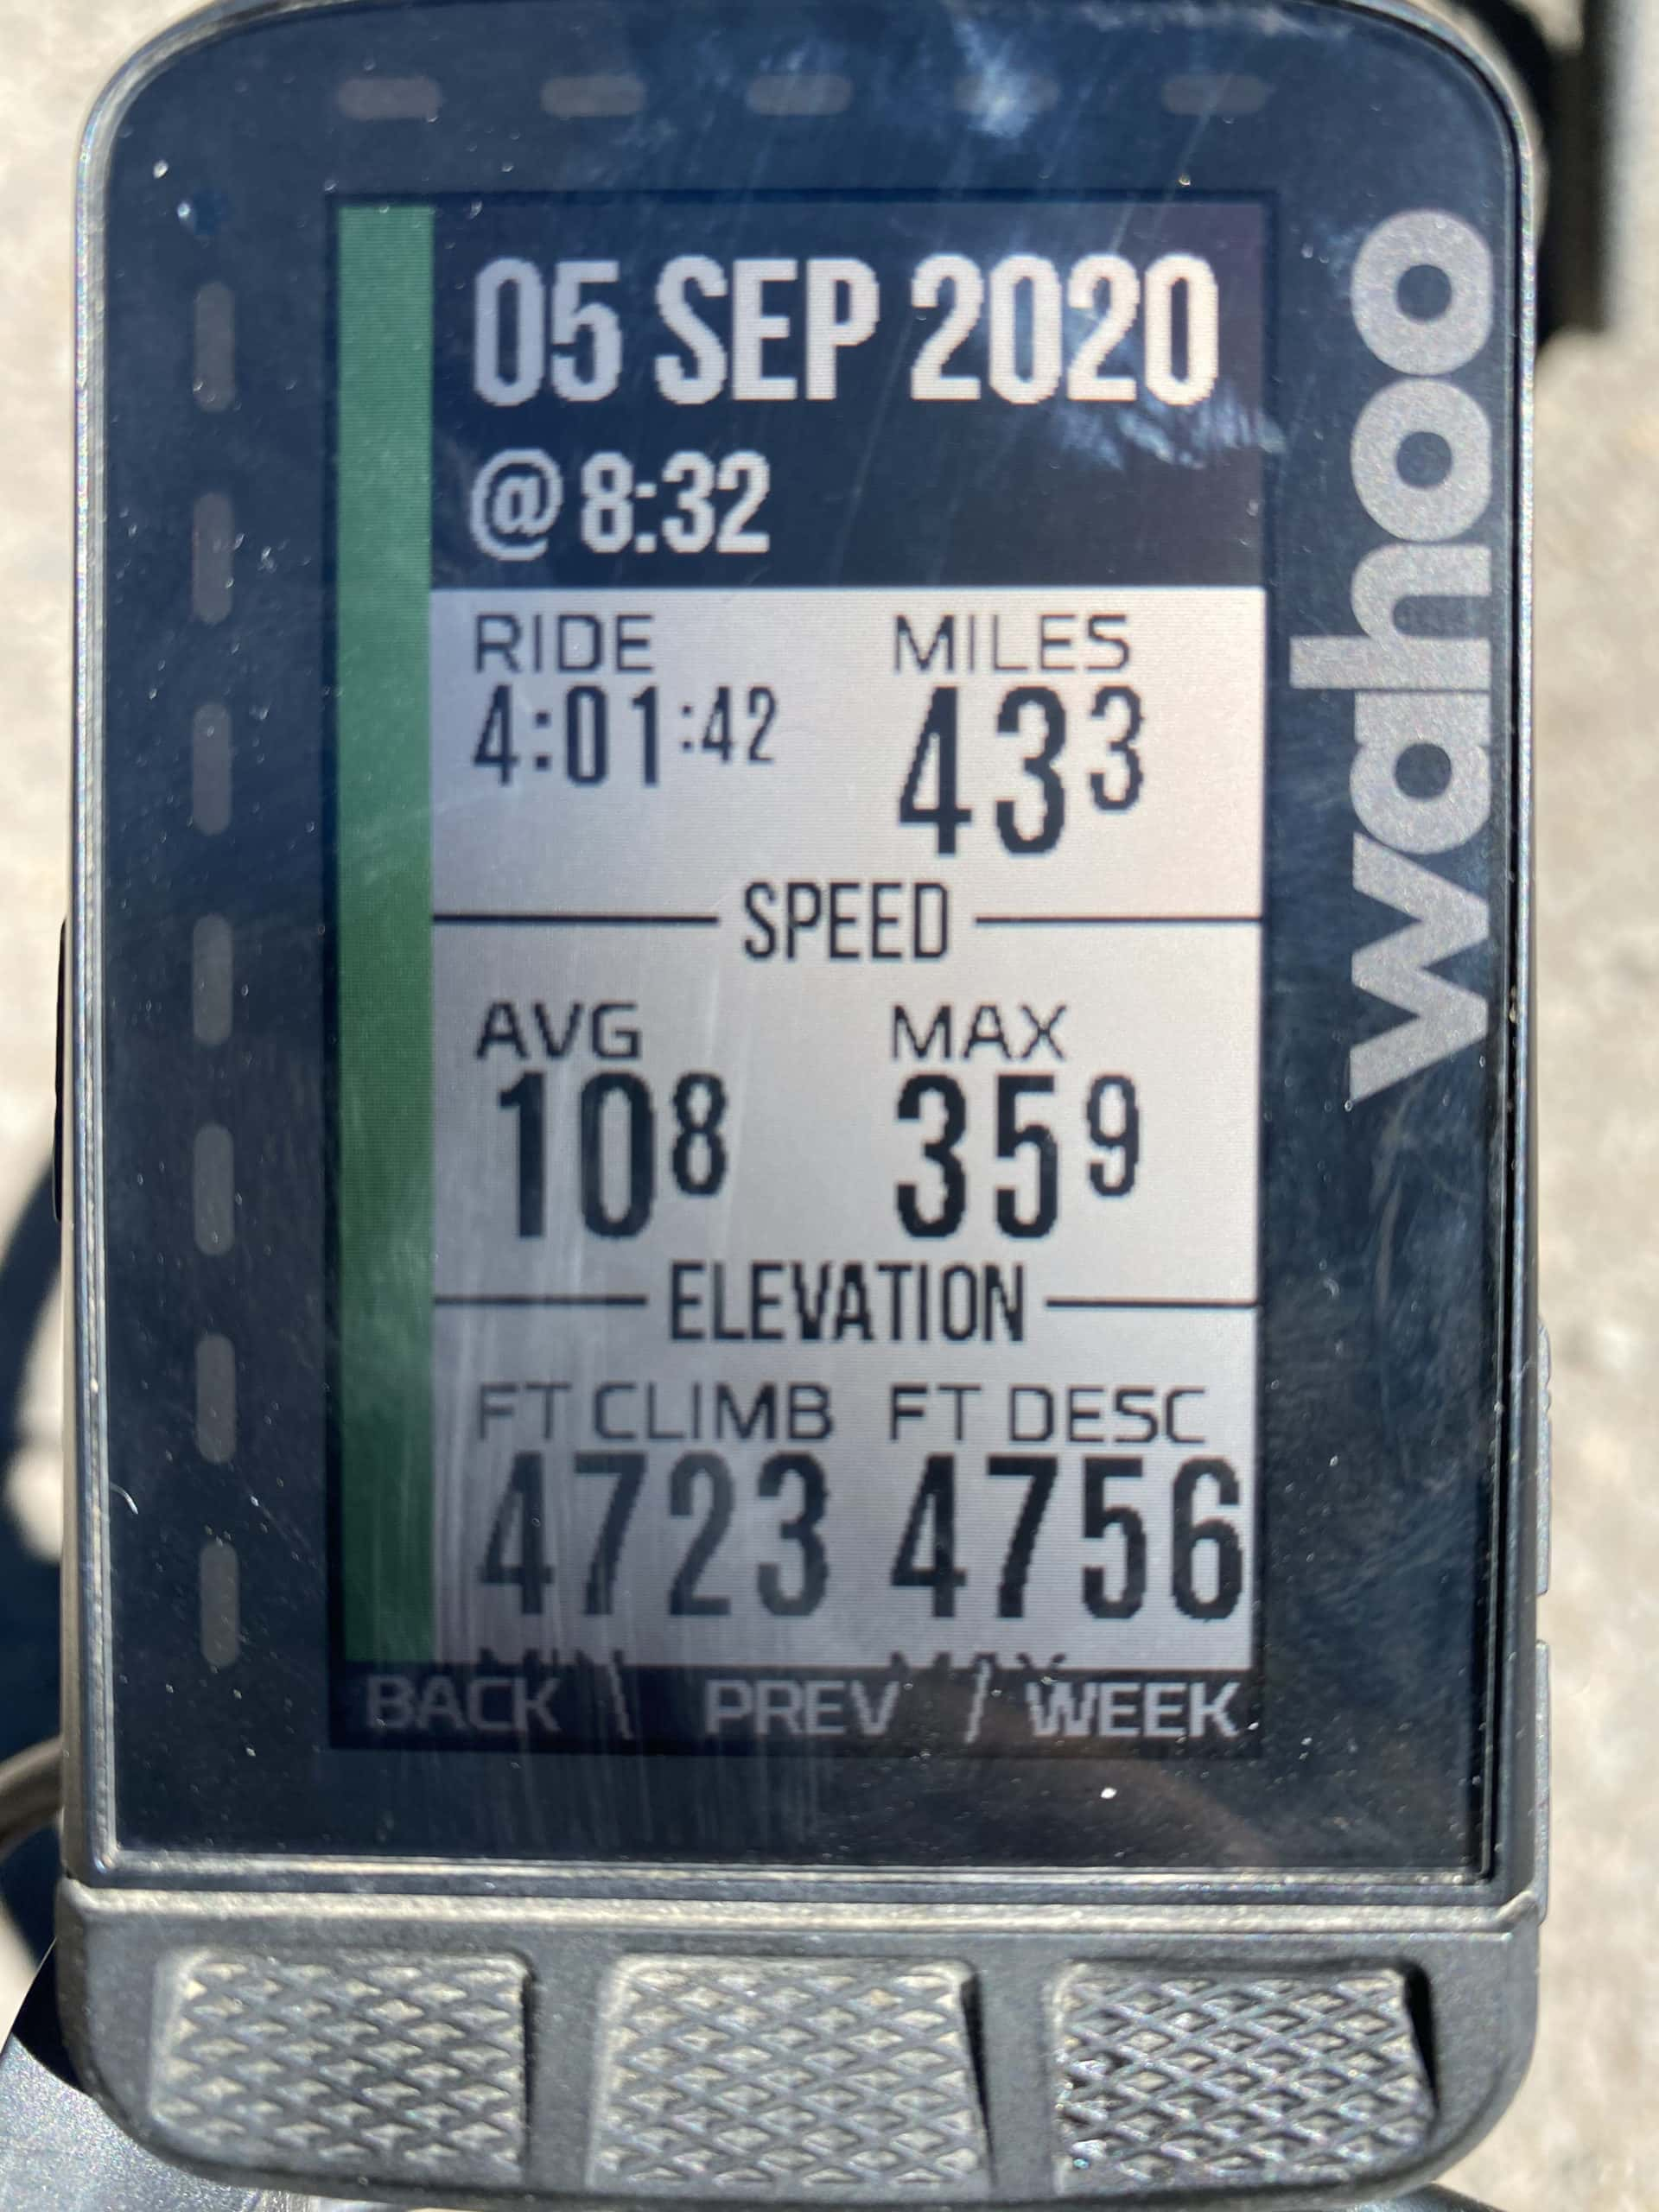 Gravel Girl's ride metrics for the Dinner with Brice route on Dirty Freehub. Ride great gravel routes.